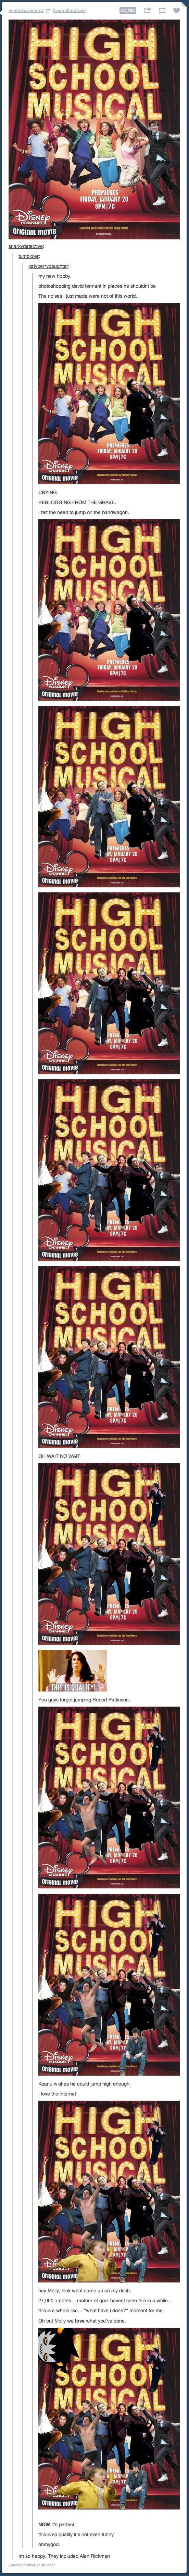 High School Musical just got awesome. What David Tennant in places he shouldn't be started...